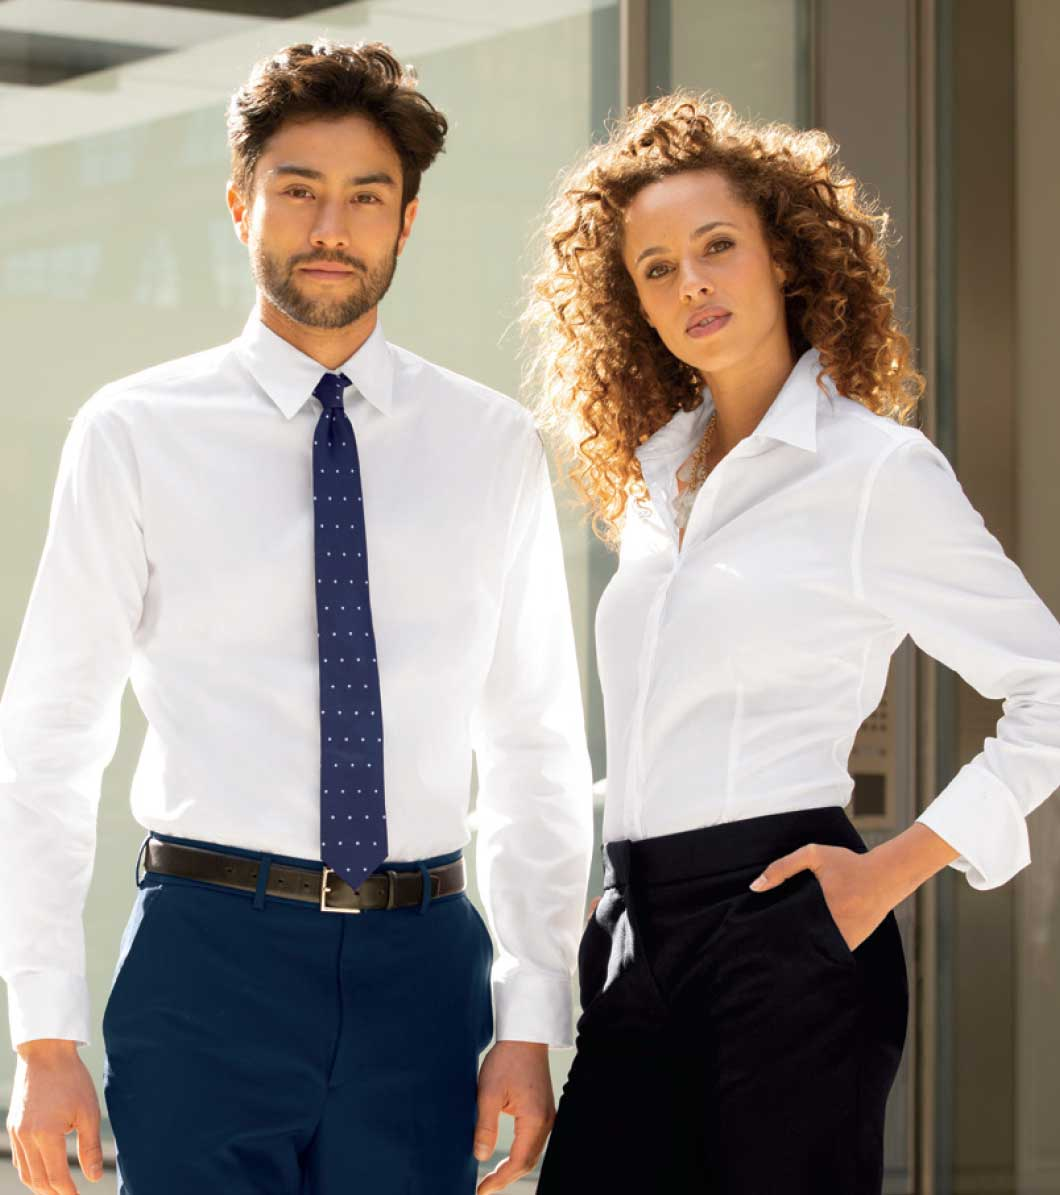 image of standing executives in executive apparel